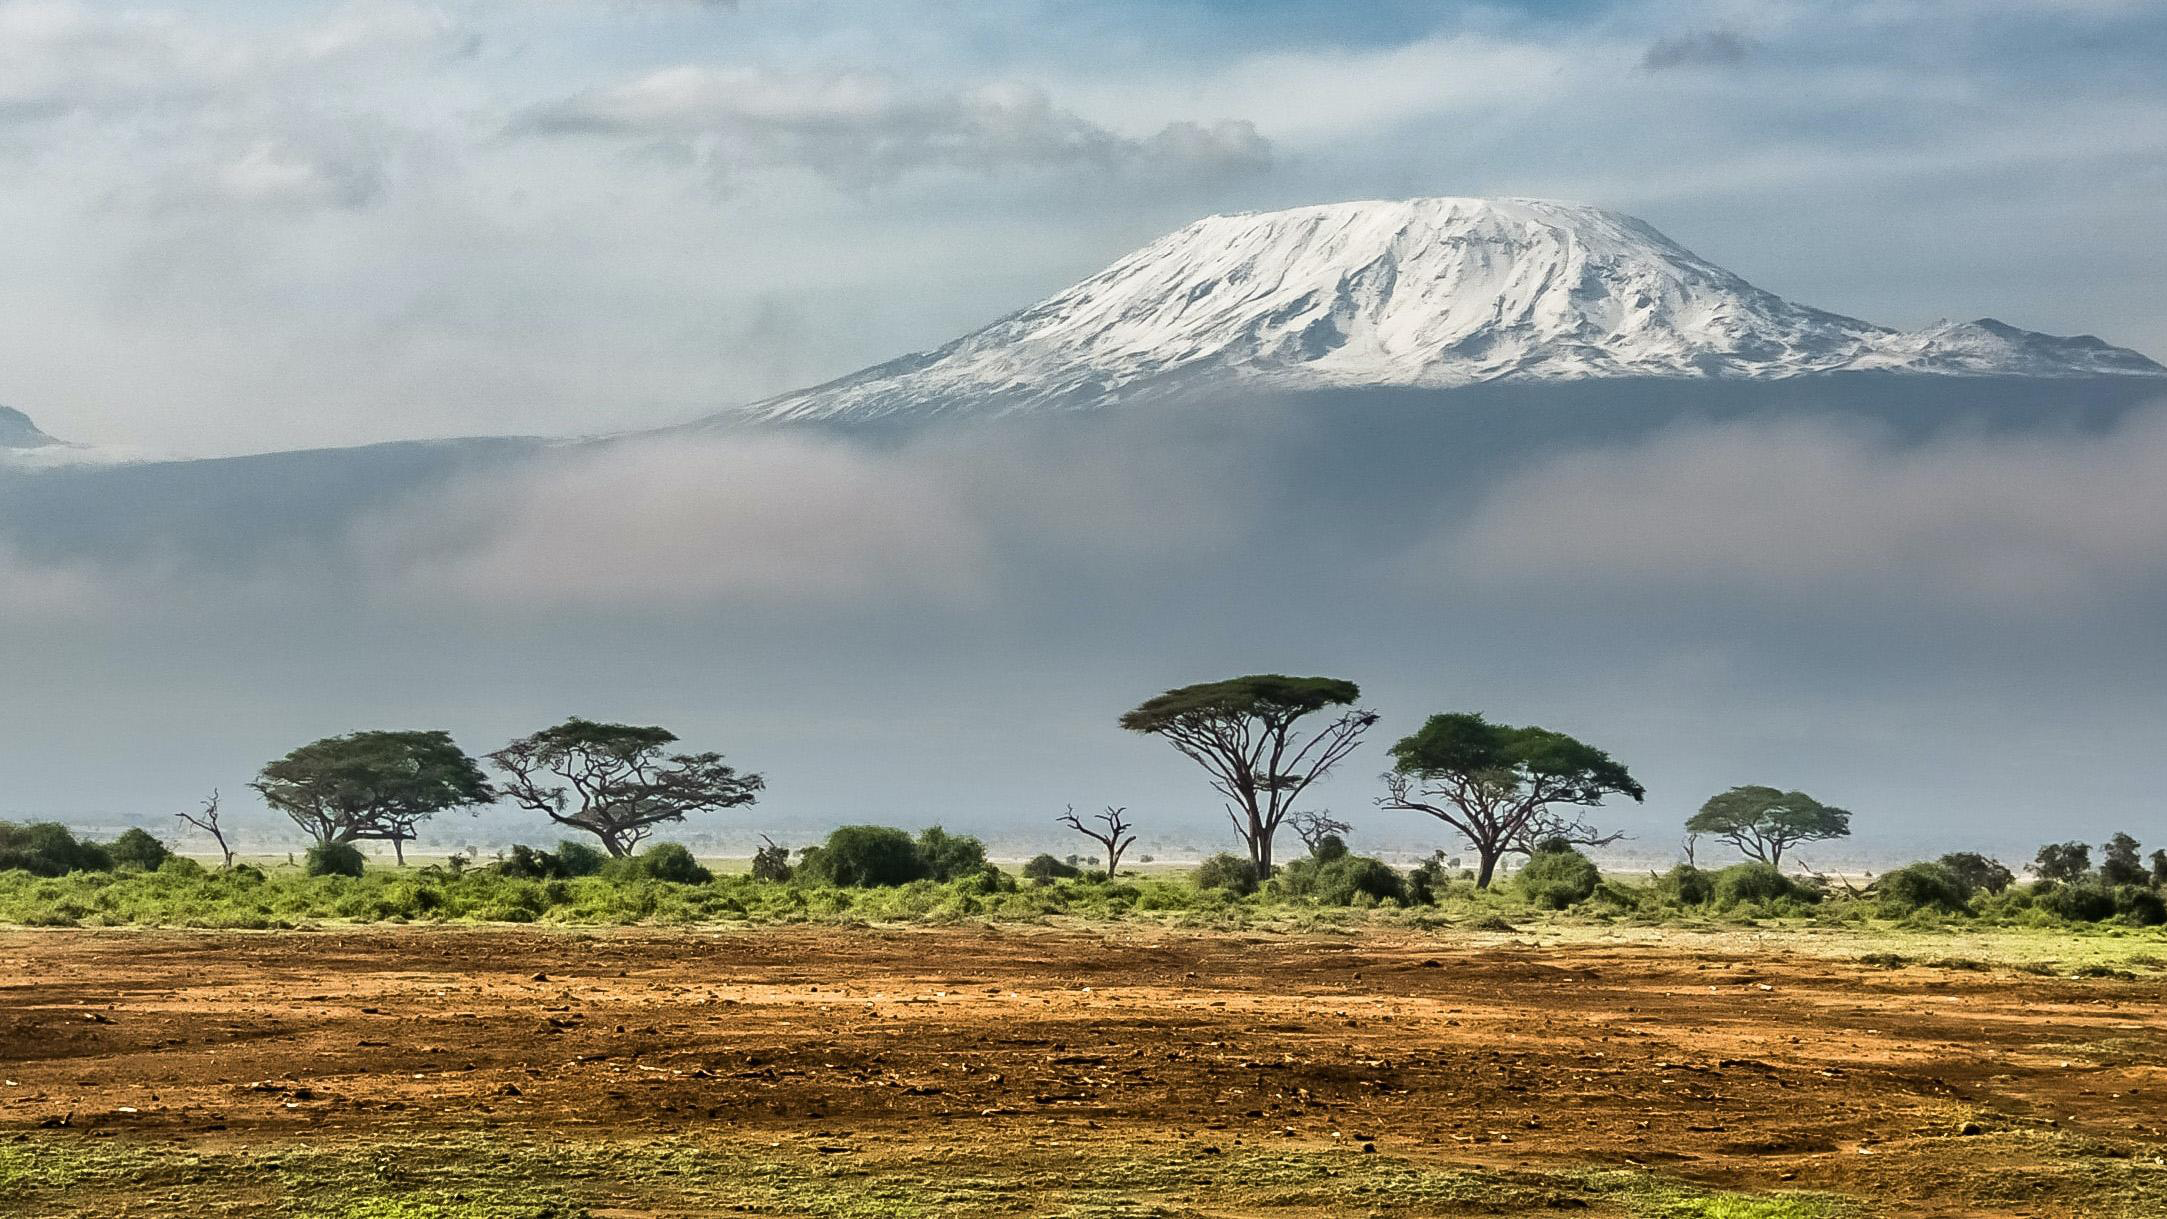 a view of a mountain in kenya